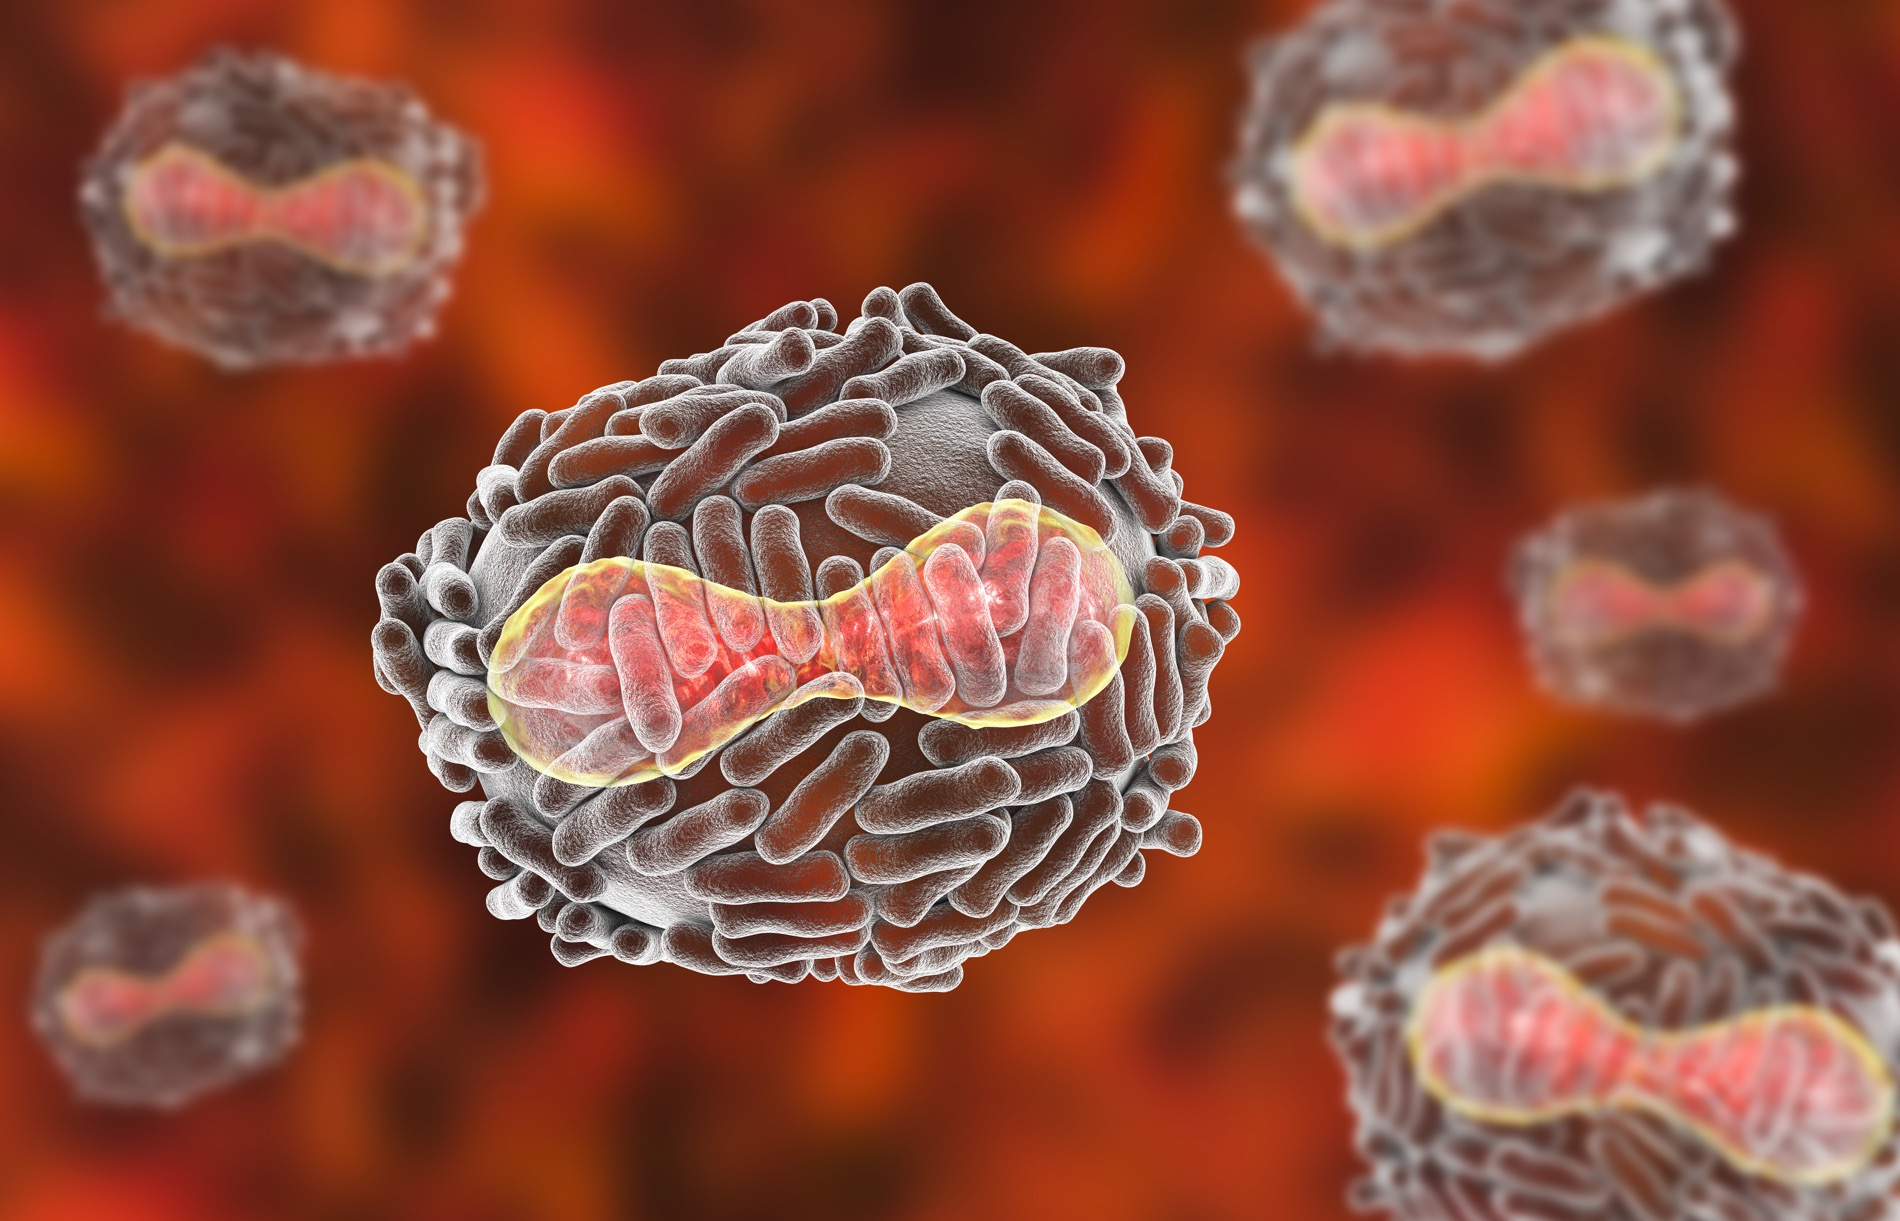 The biolaboratory where the explosion occurred houses one of only two remaining smallpox samples in the world. (Live Science)